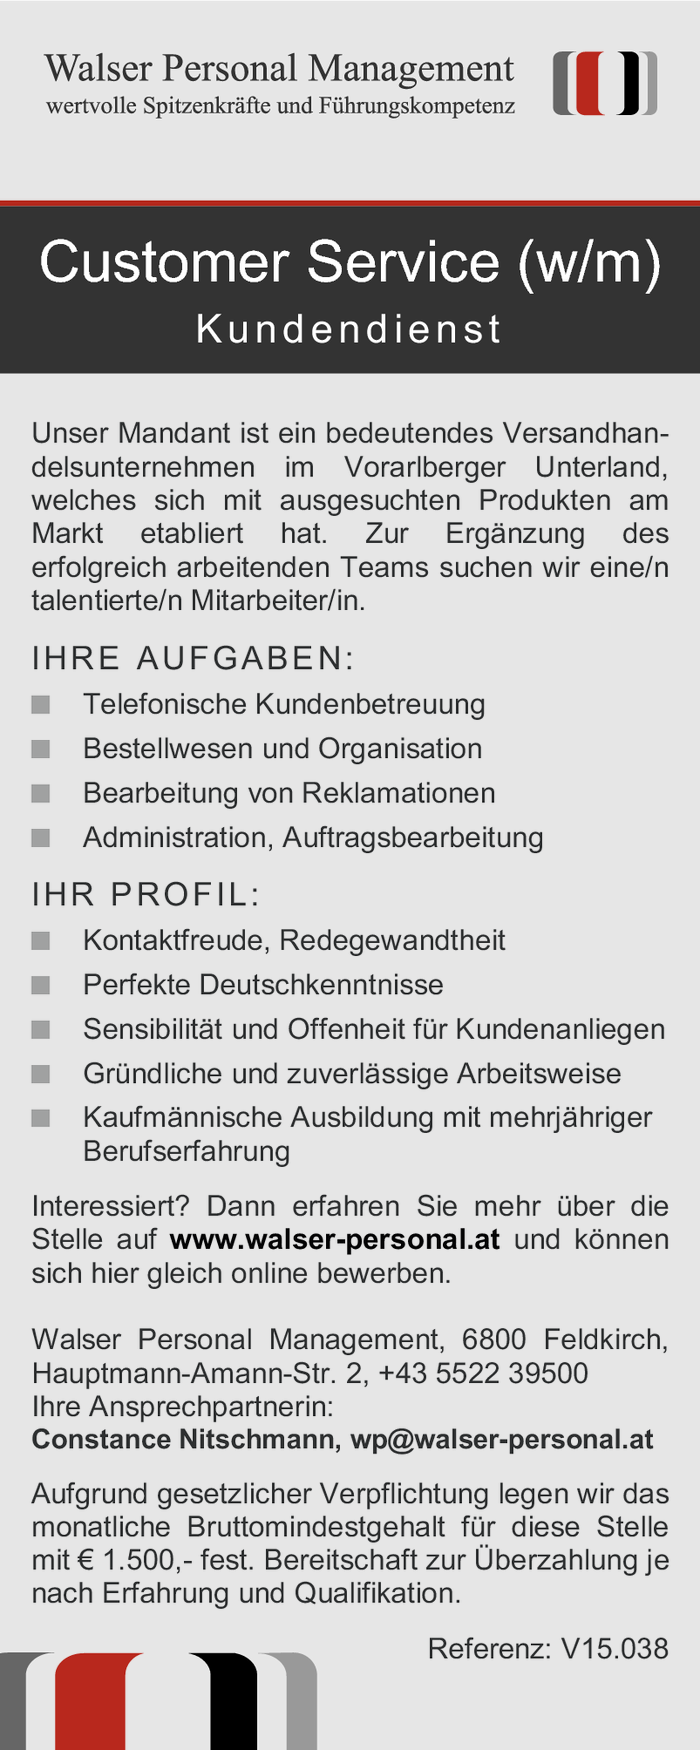 customer-service-kundendienst